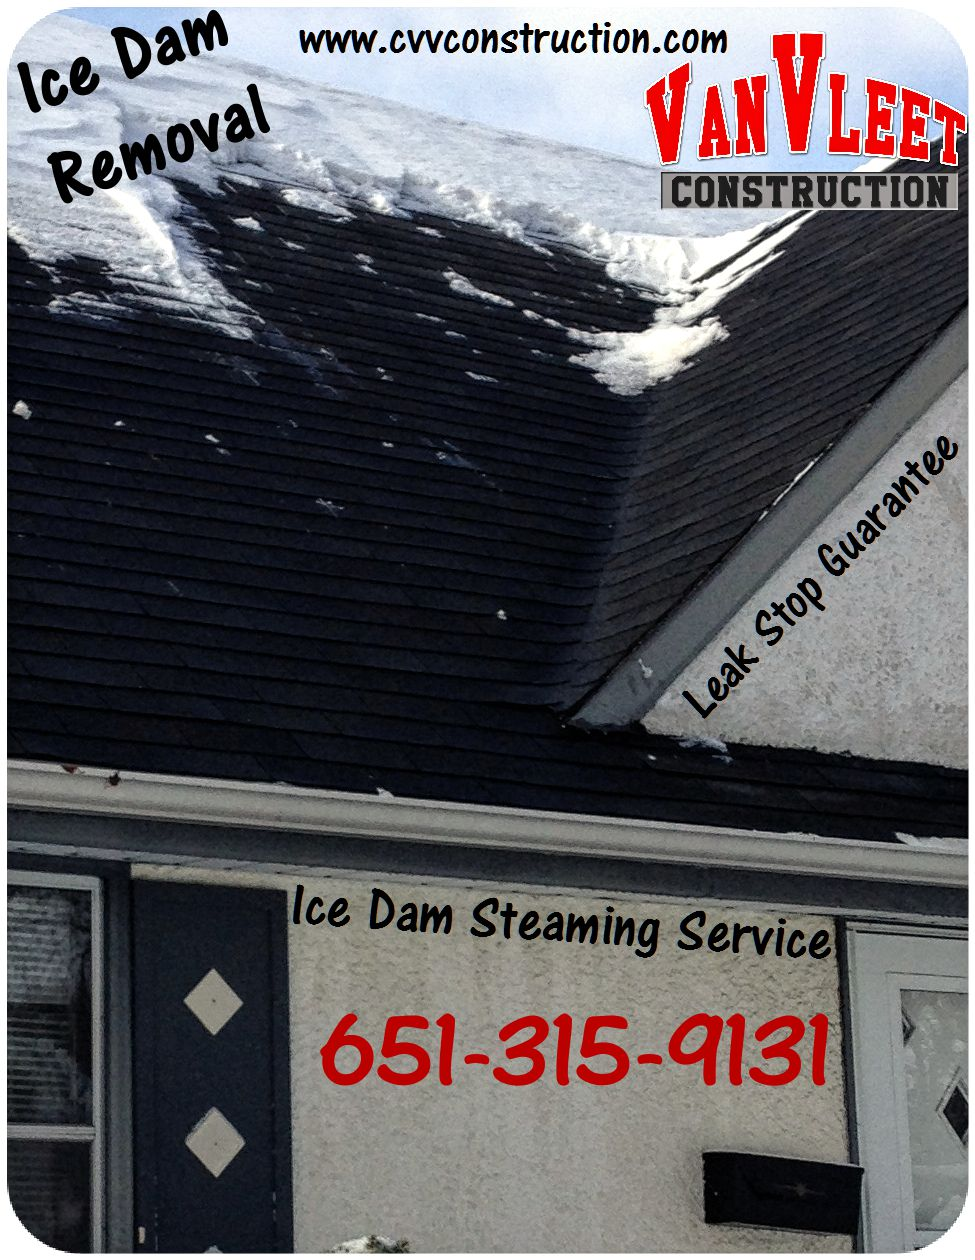 Minneapolis, MN Ice dam removal company photo, MN ice dam steaming services